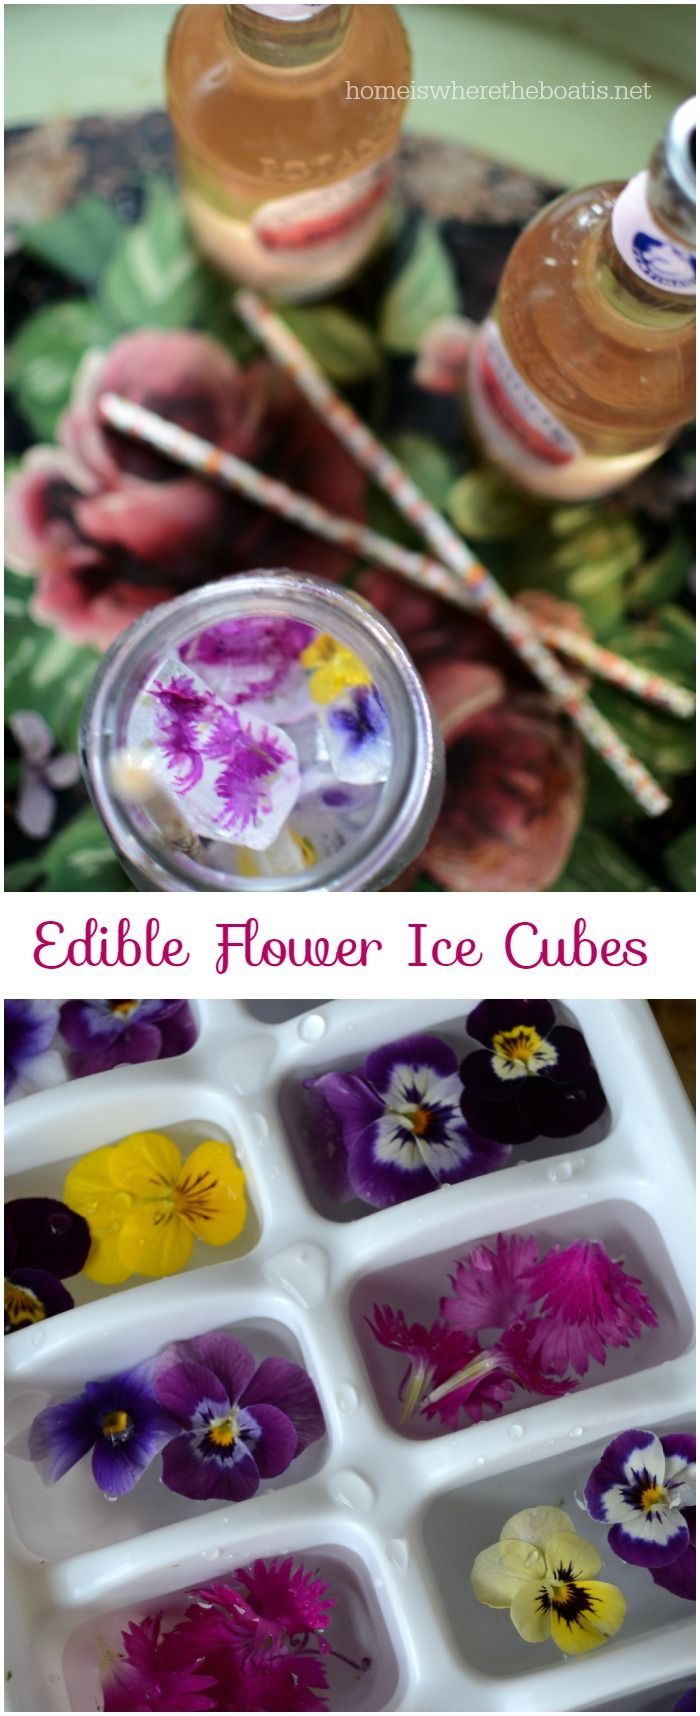 Edible Flower Ice Cubes | homeiswheretheboatis.net #edibleflowers #garden #party